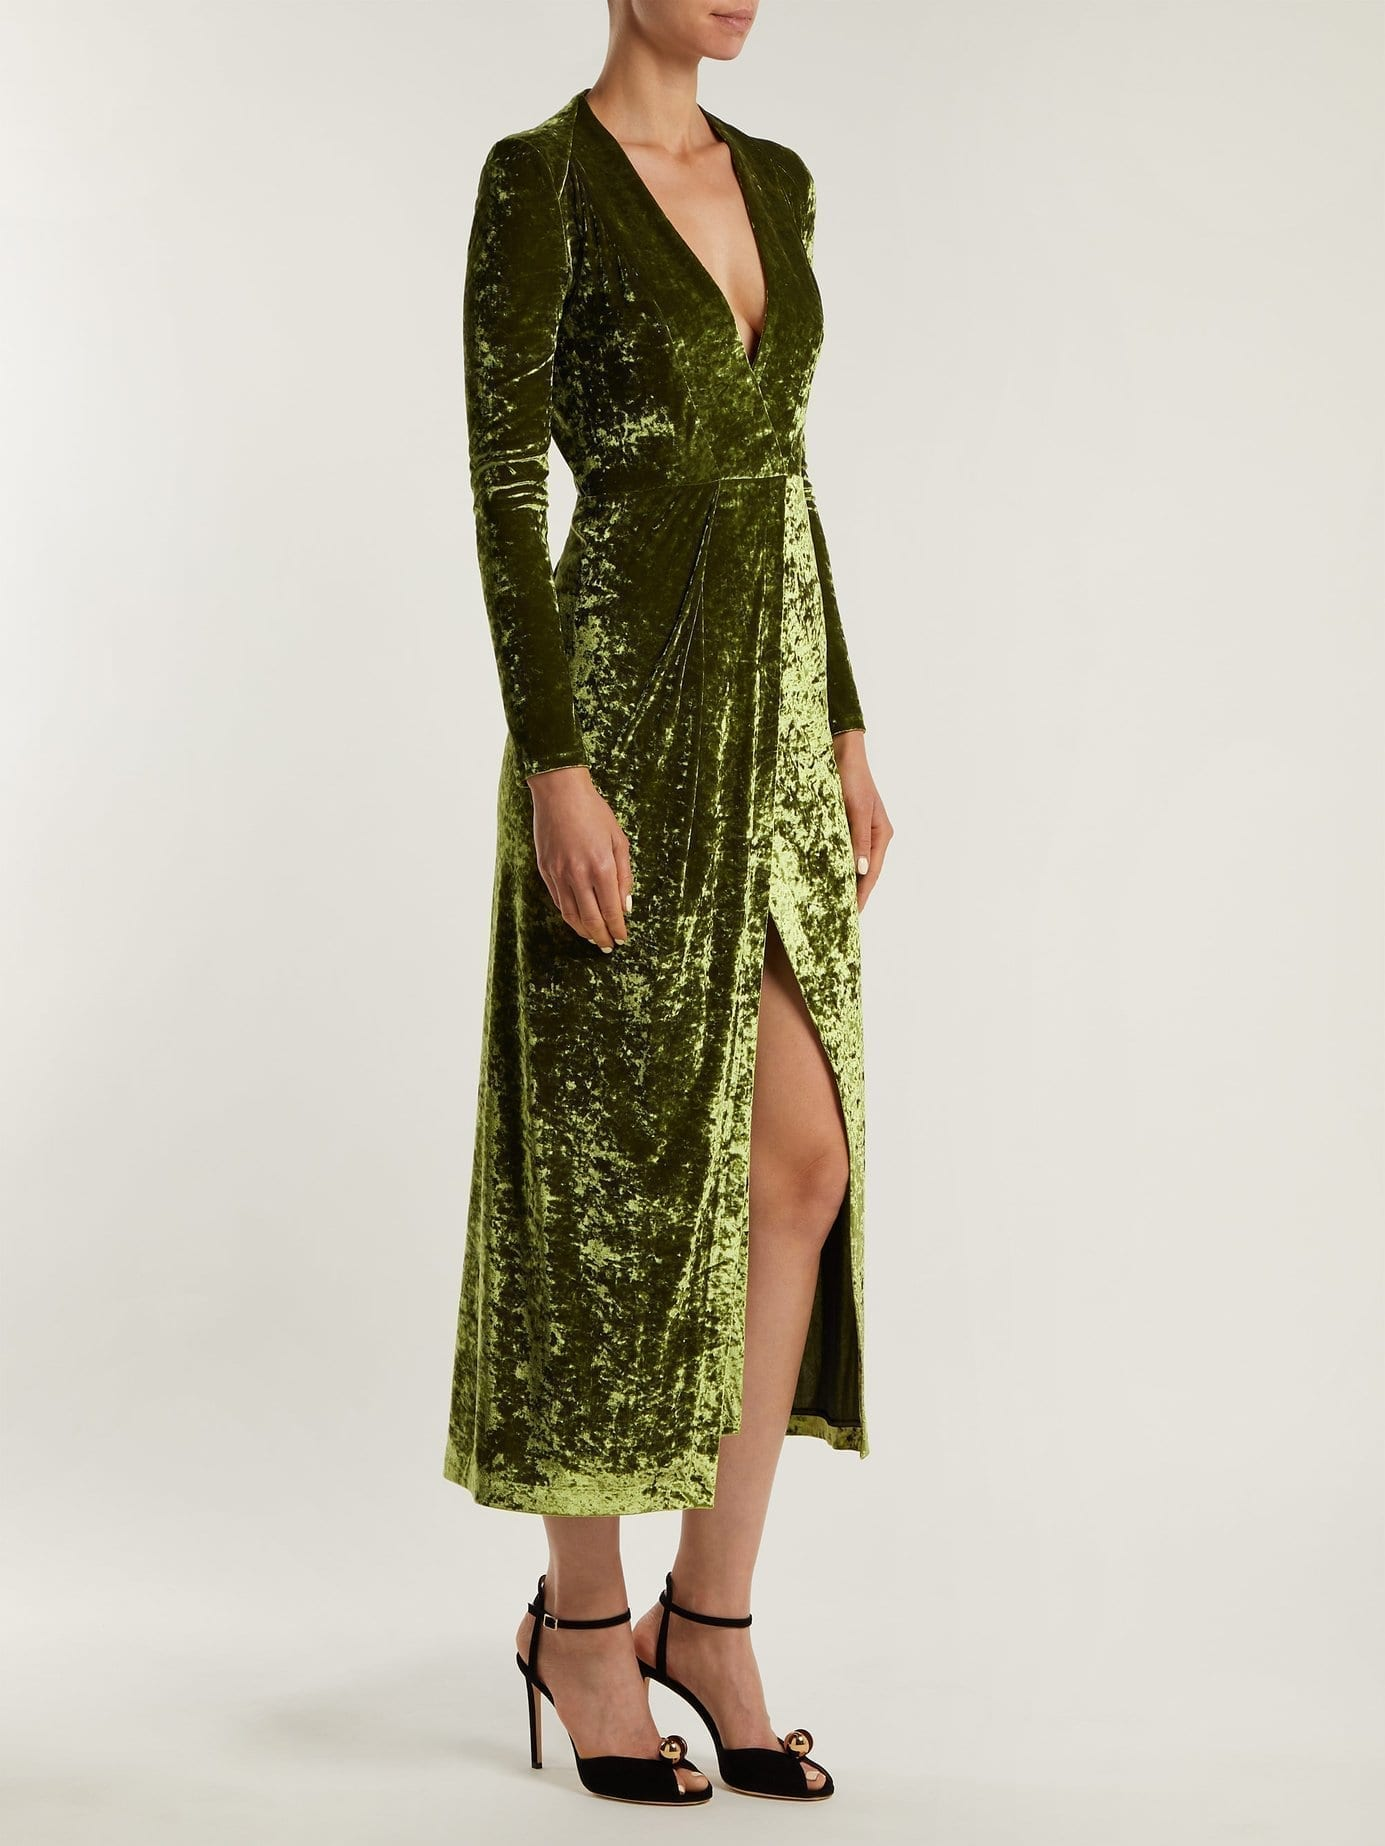 GALVAN Cloud Hammered Velvet Light Green Dress